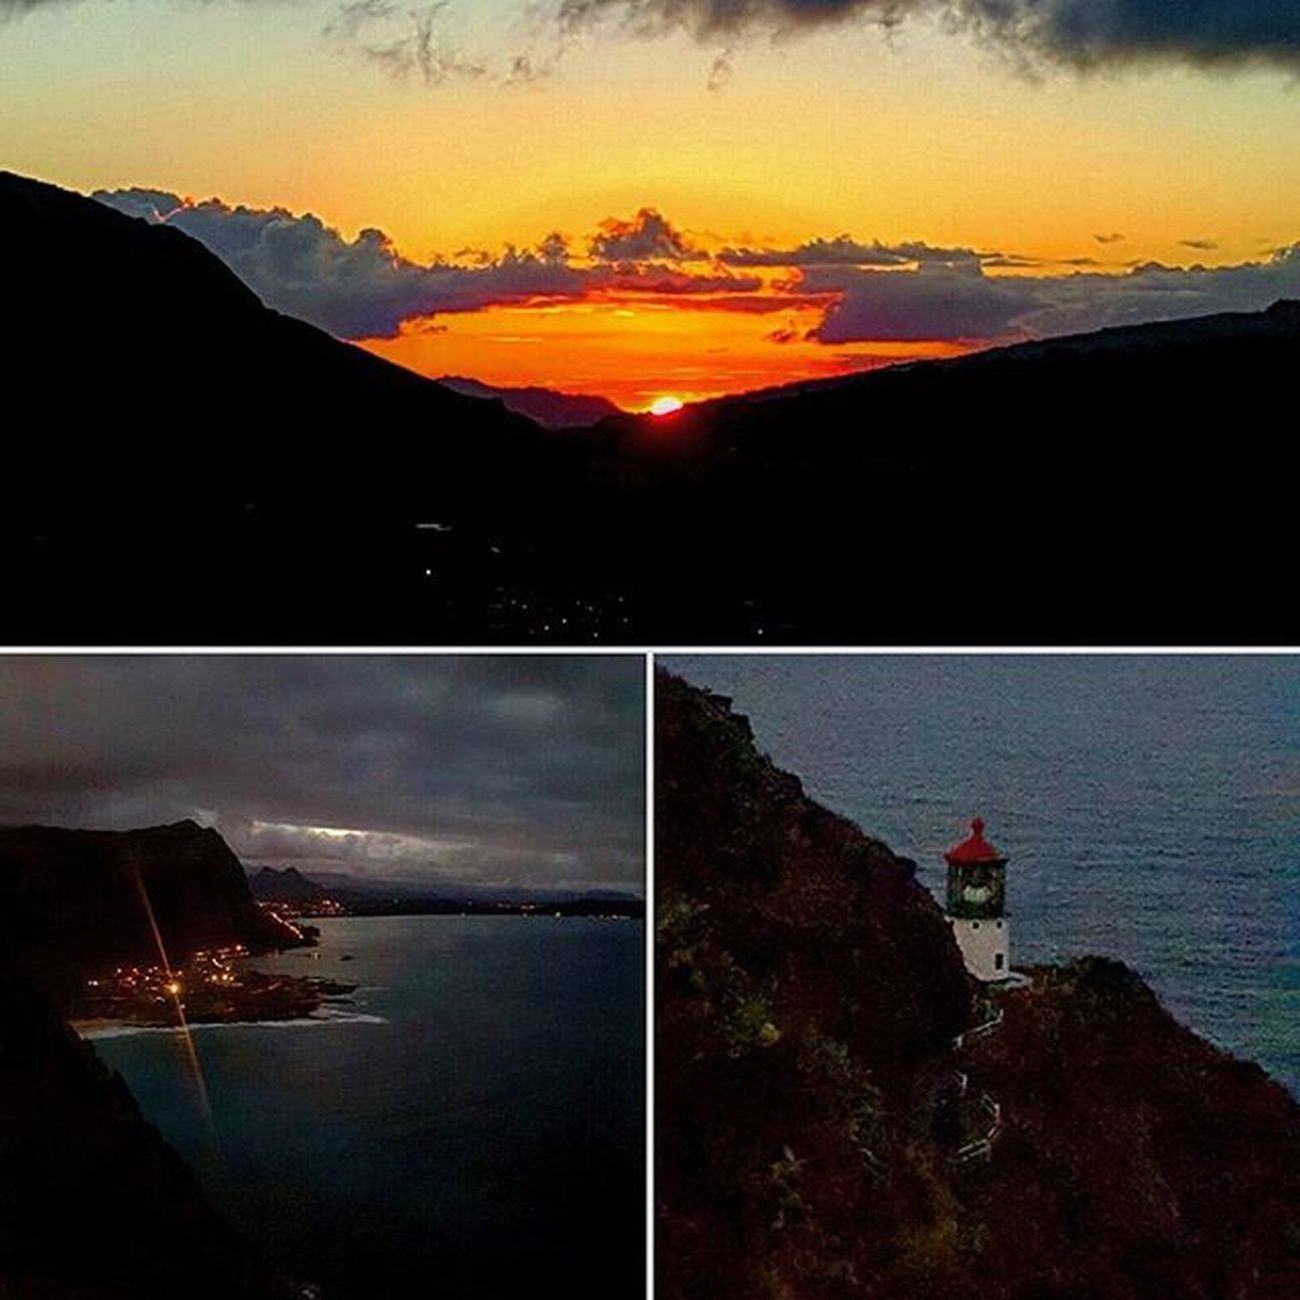 Went for whales caught a sunset. Sunset Waimanalocoast Makapuulighthouse Makapuu Luckywelivehawaii Epichi Venturehawaii Shenanigans Alohahawaii Fitlife GodIsGreat HiLife Latergram